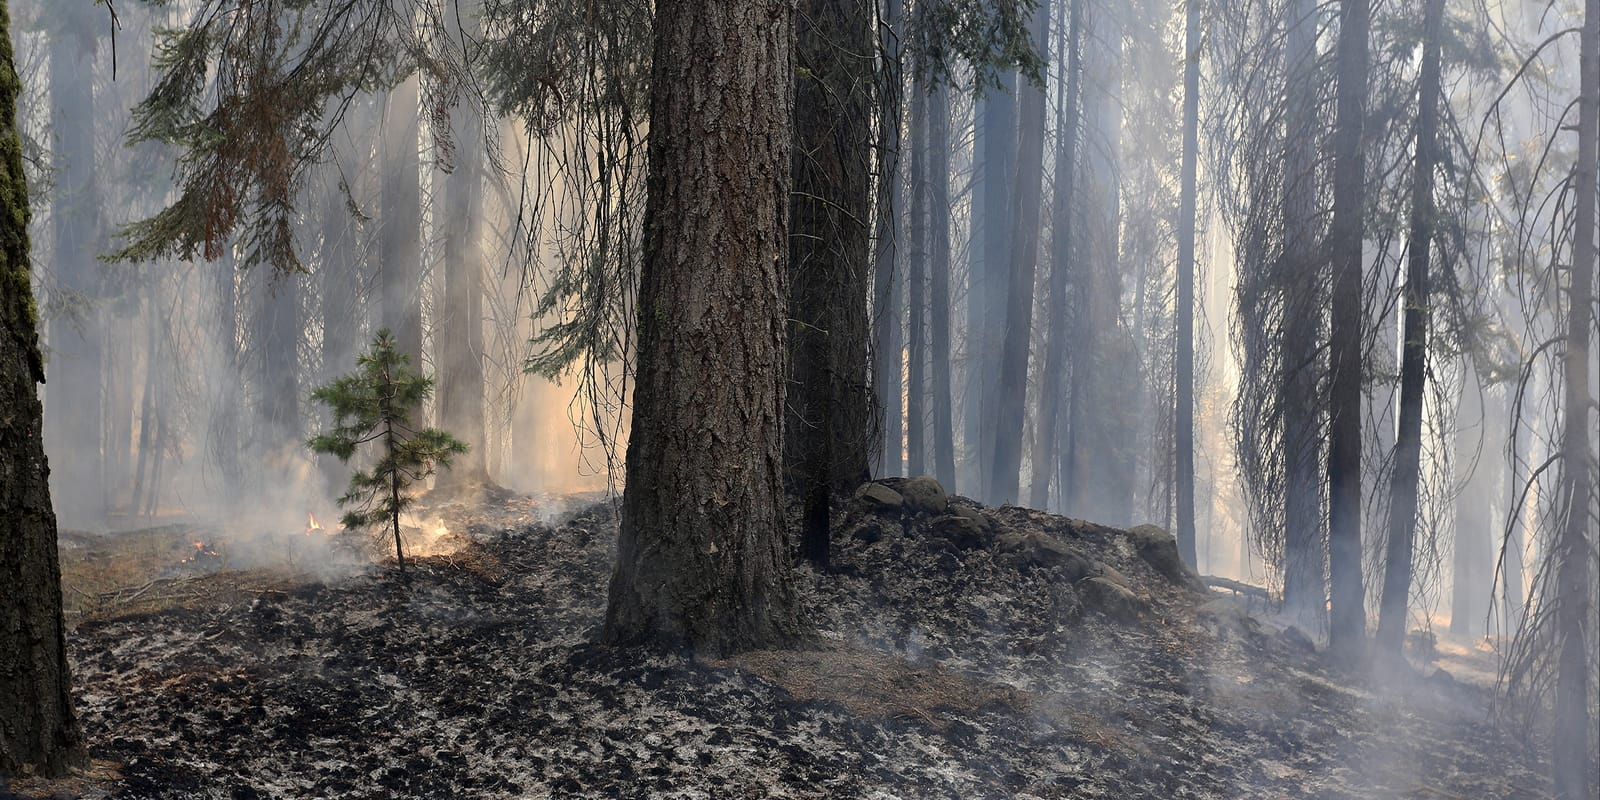 Air purifier for wildfire smoke - trees surrounded by smoke